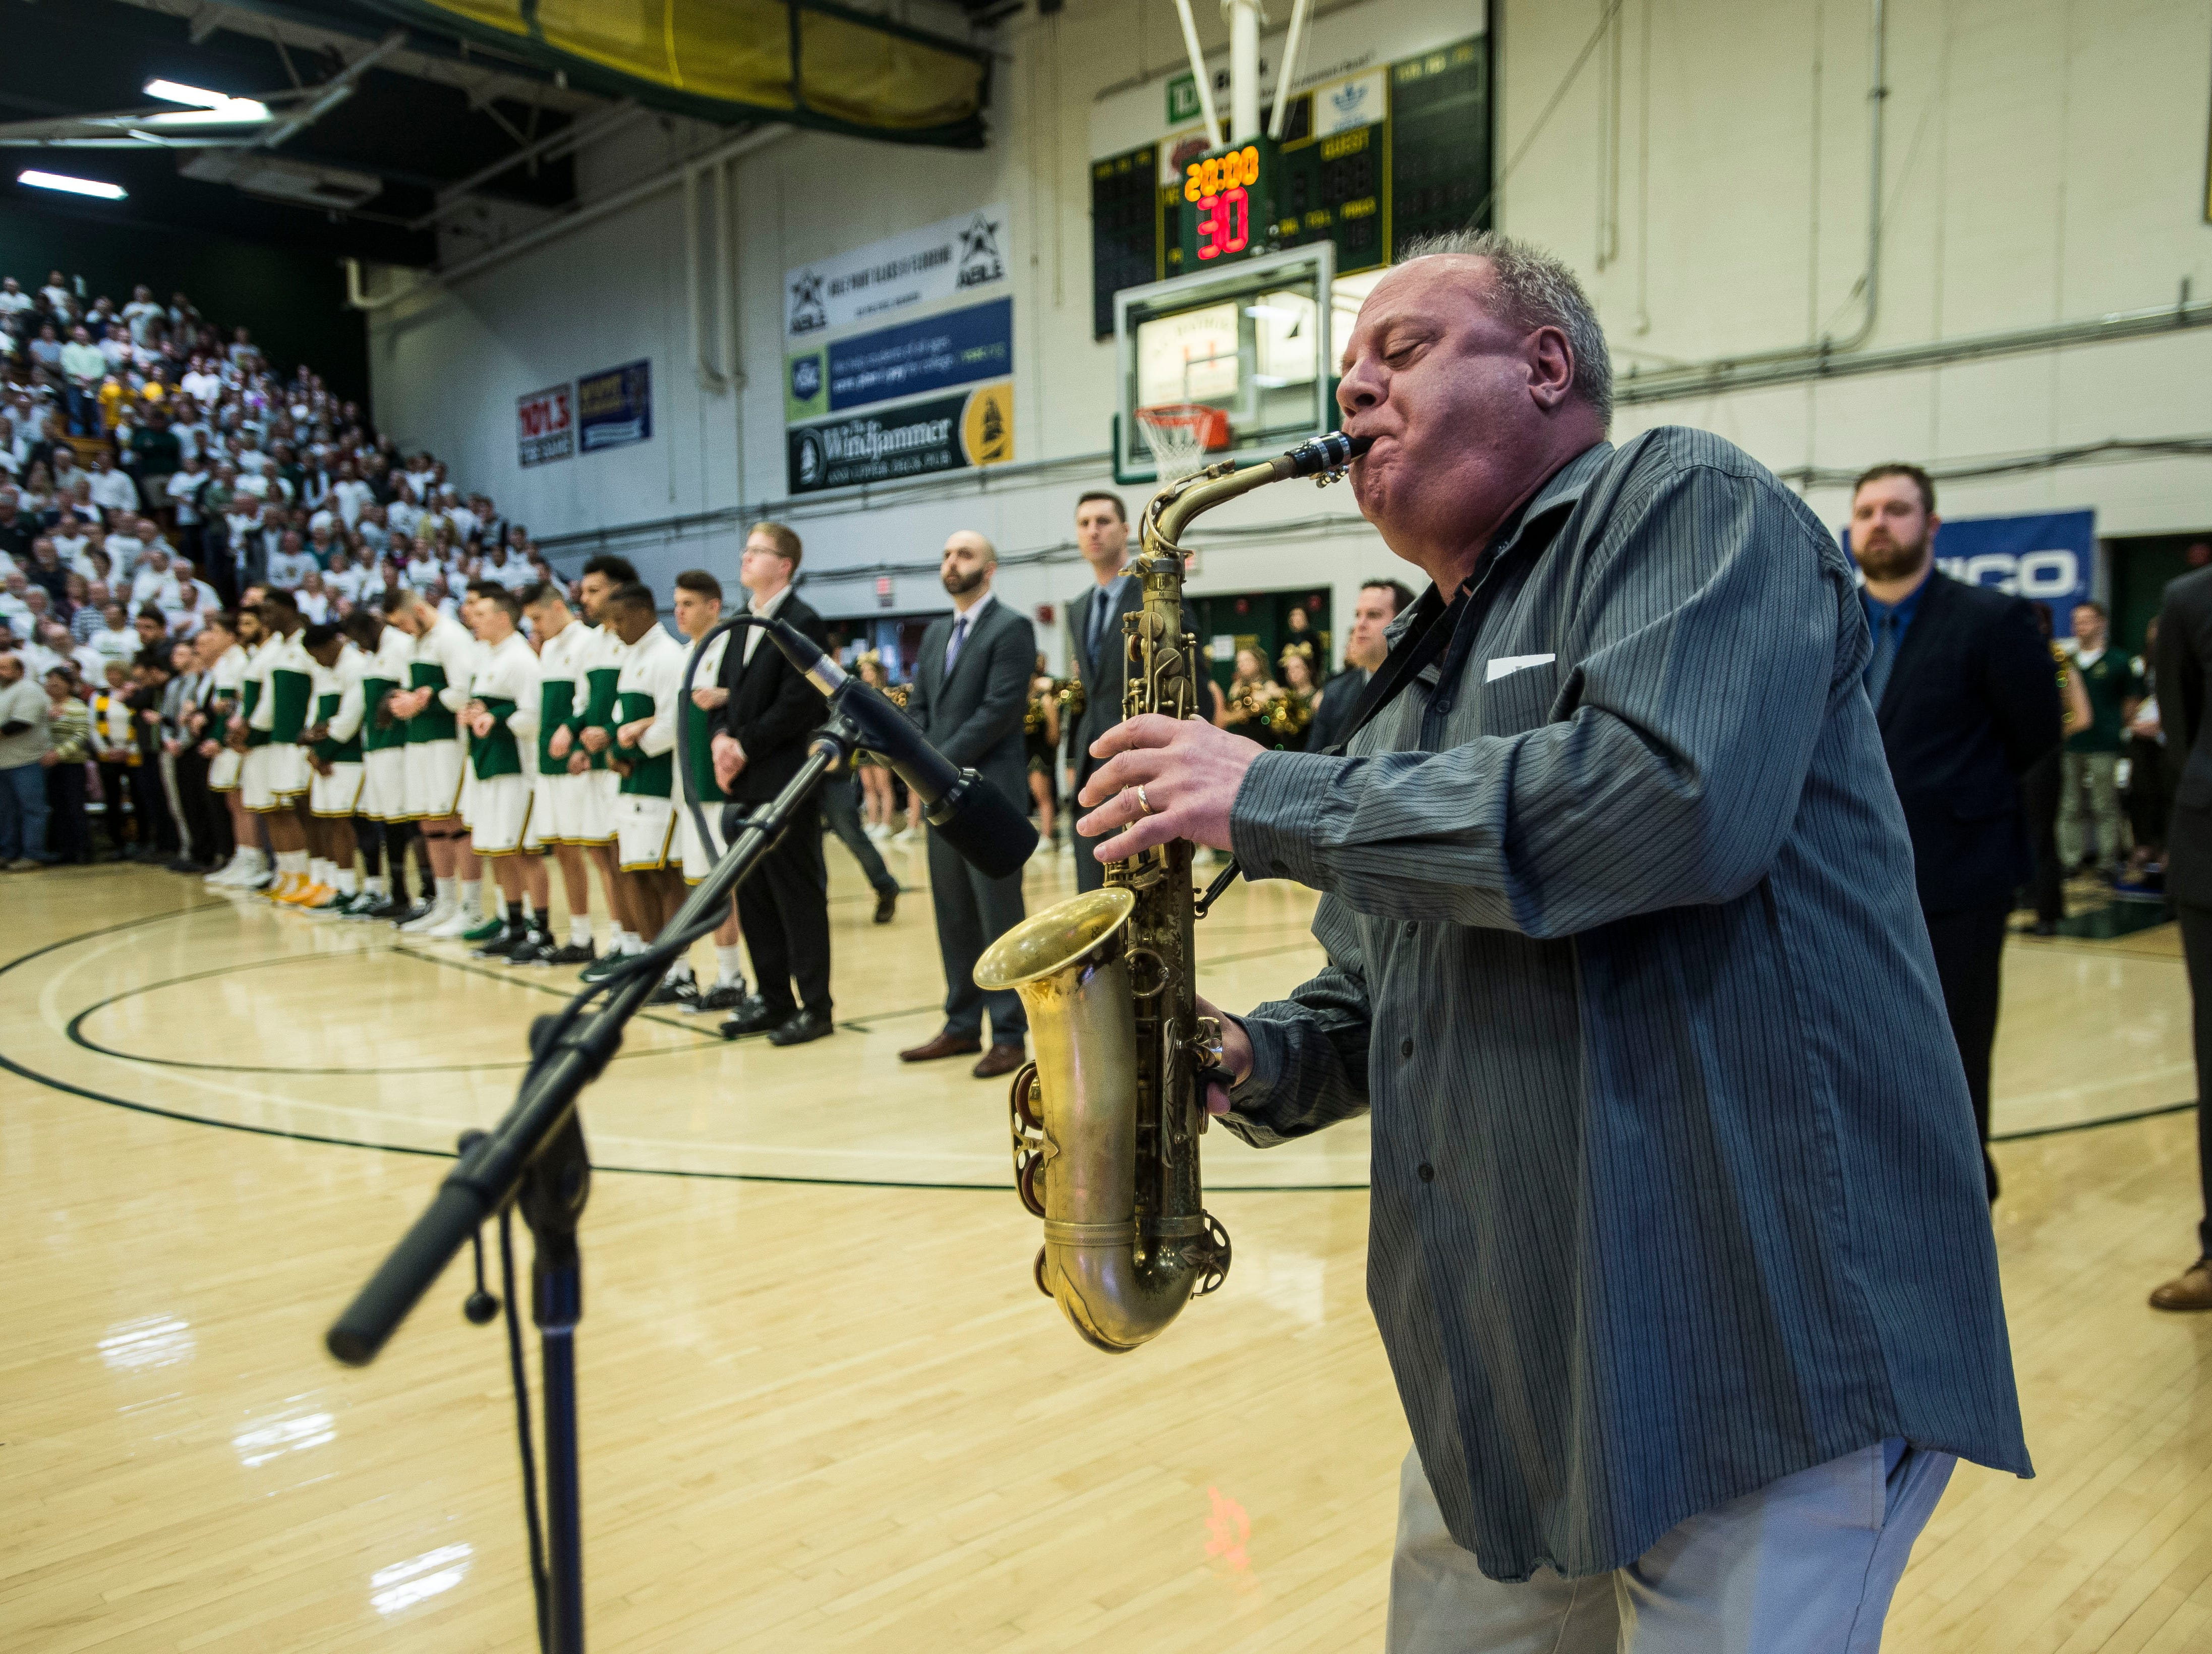 Dave Grippo plays the National Anthem before the start of the America East Championship in Burlington, Vt., on Saturday, March 16, 2019. UVM won, 66-49 and will head to the NCAA March Madness Tournament.